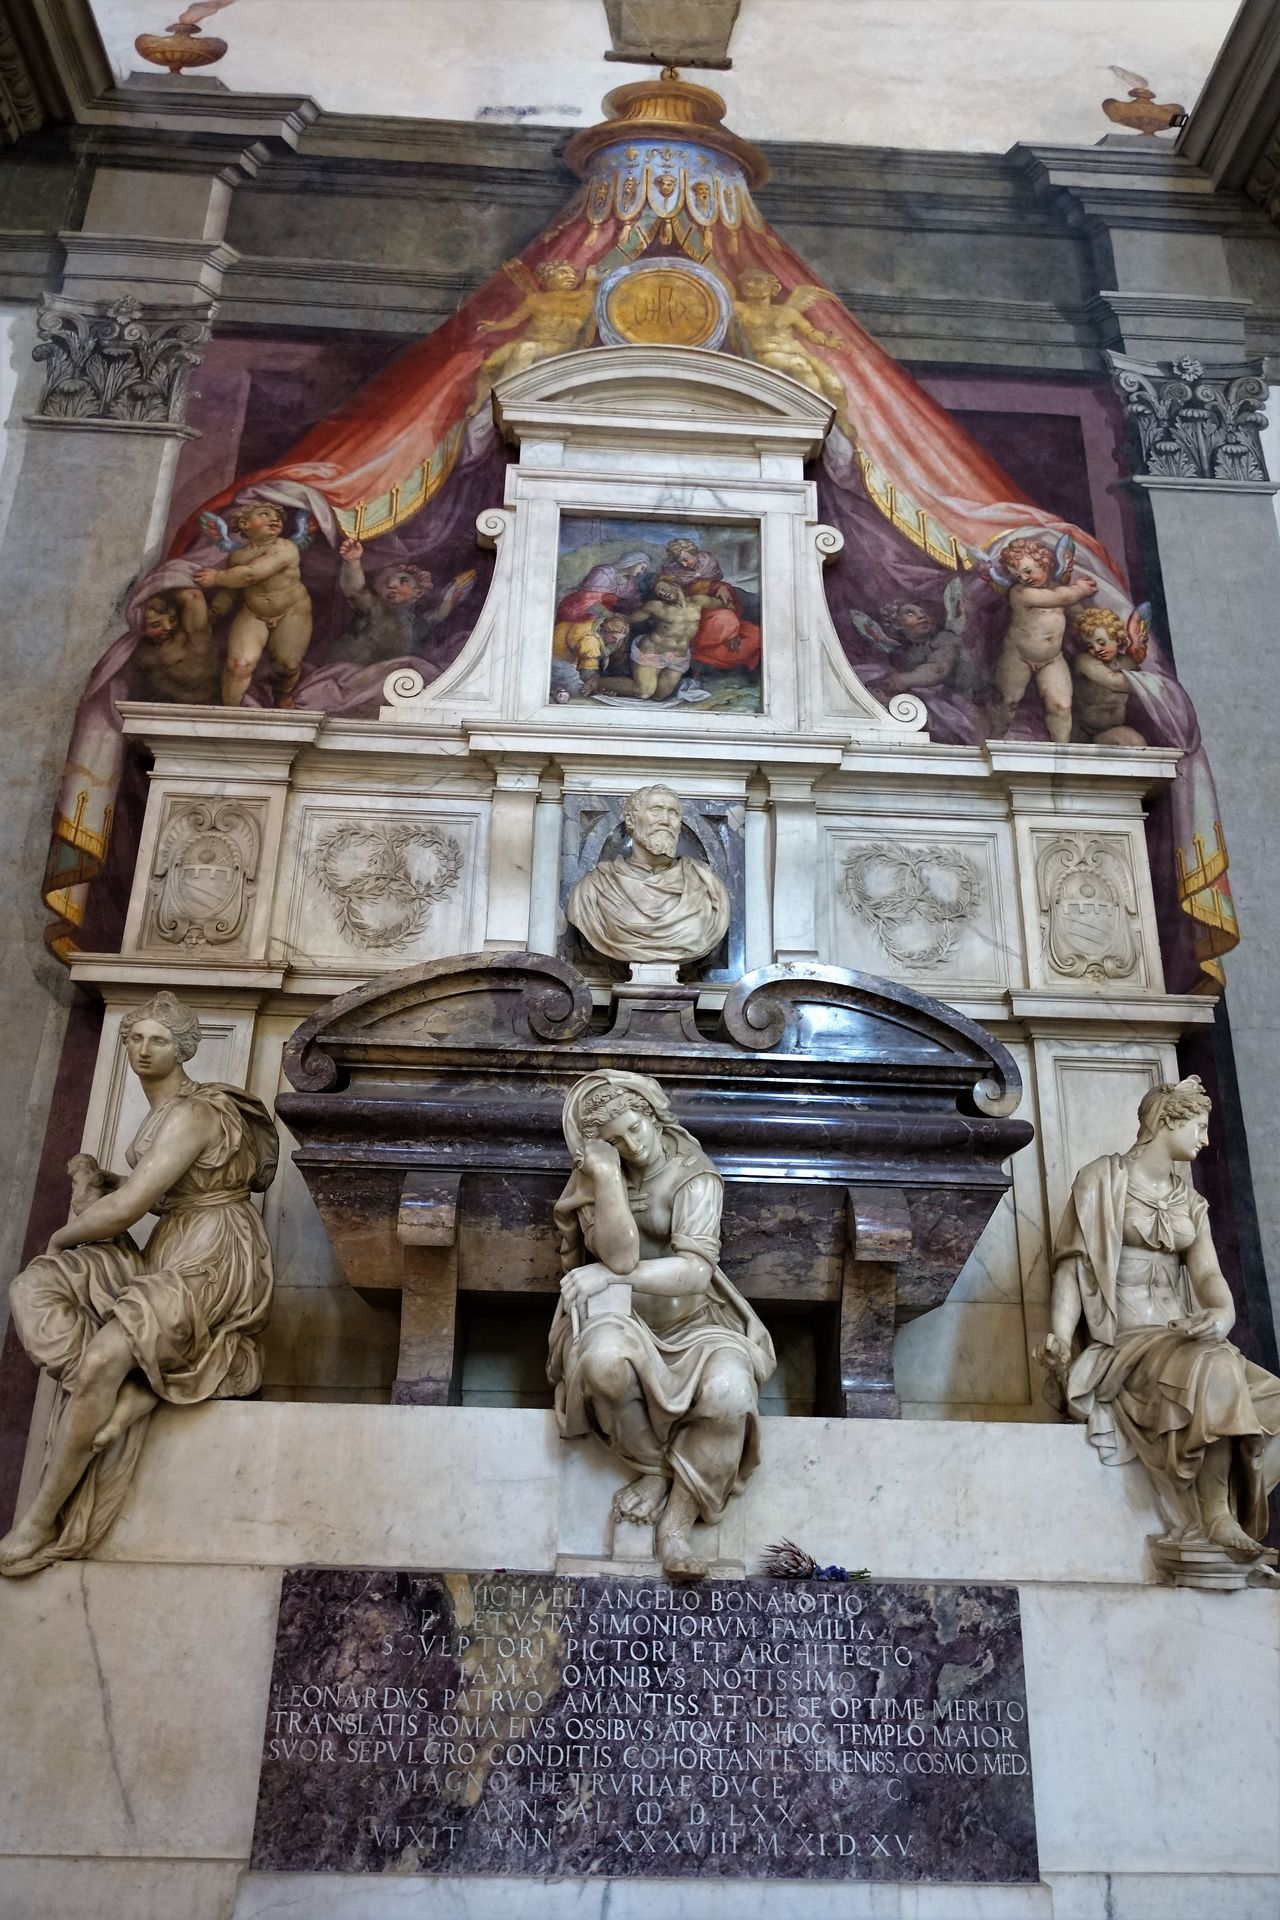 Santa Croce Architecture Art And Craft Basilica Di Santa Croce Built Structure Burial Site Day Female Likeness Franziskaner History Human Representation Indoors  Male Likeness Michelangelo Buonarroti No People Place Of Worship Religion Sculpture Spirituality Statue Tomb Of Michelangelo Tourism Travel Destinations